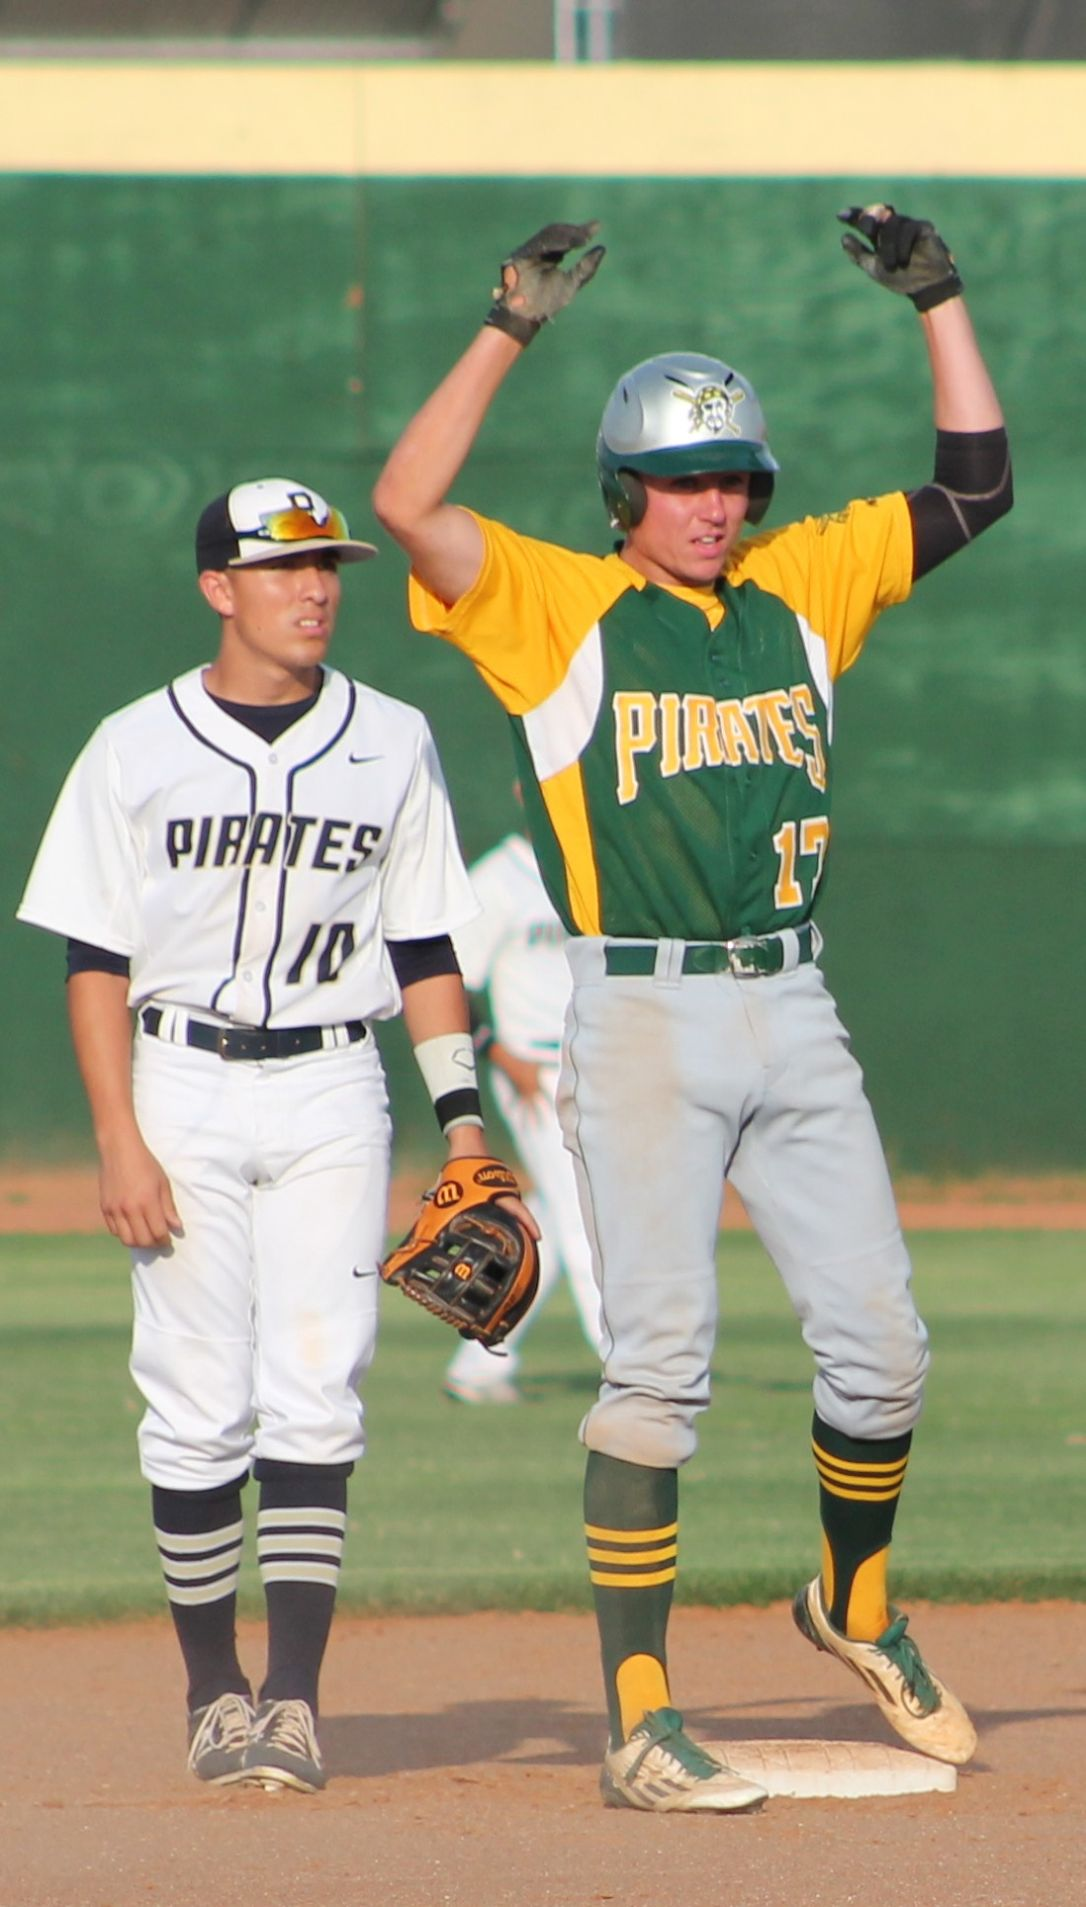 2015 Pirate Baseball Playoffs at Laradeo_01.jpg